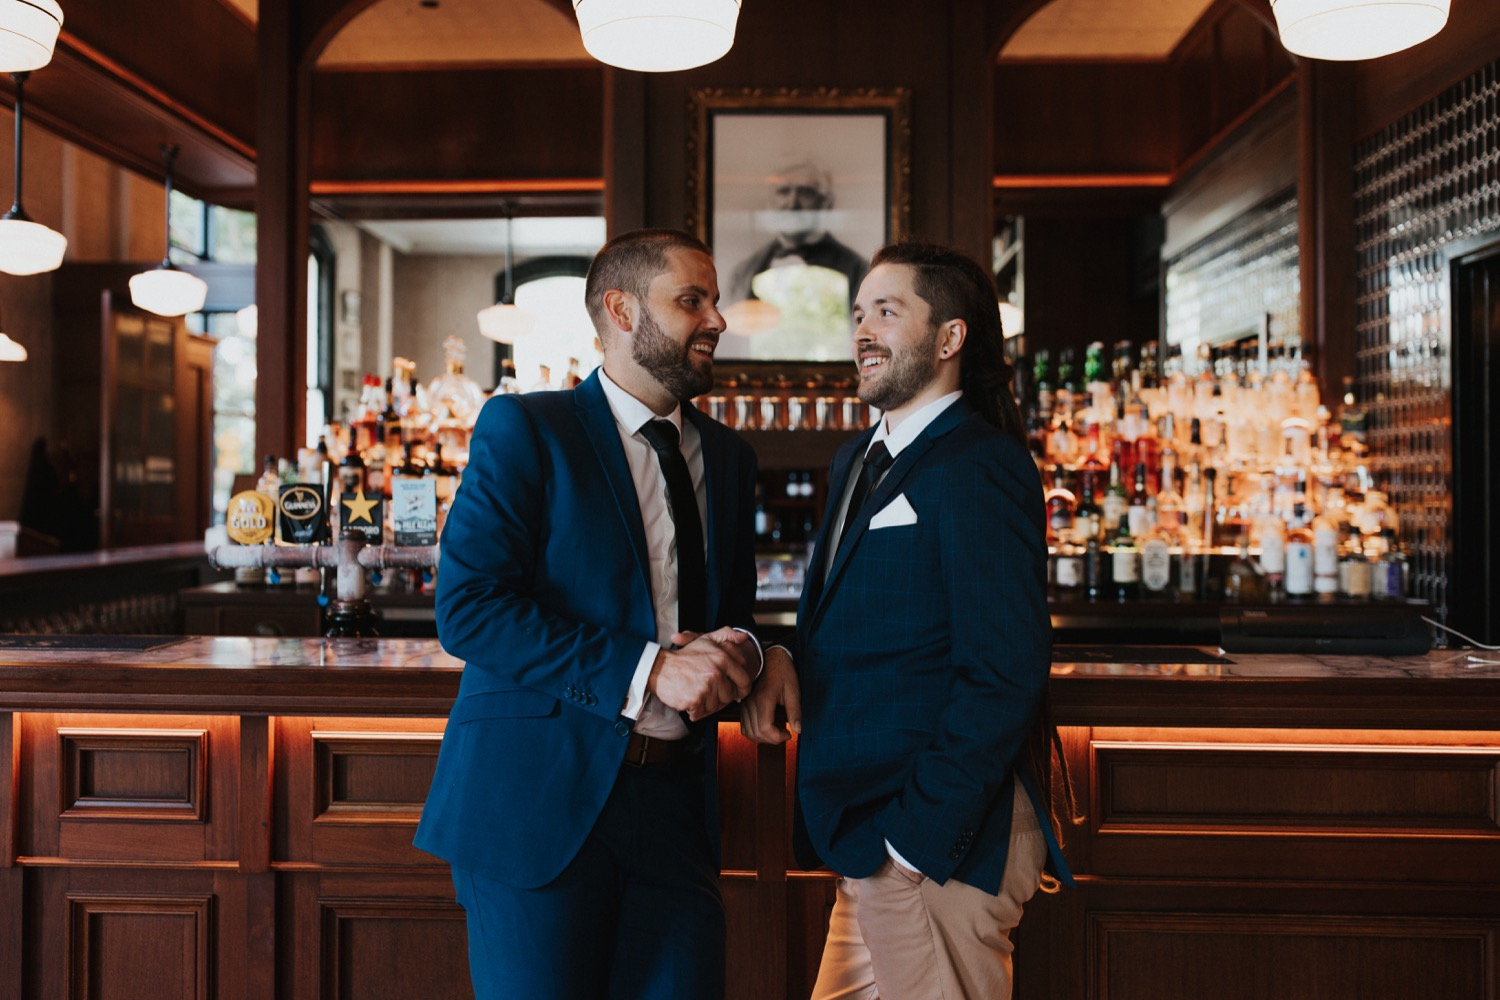 Two Grooms by Aisling Bourke